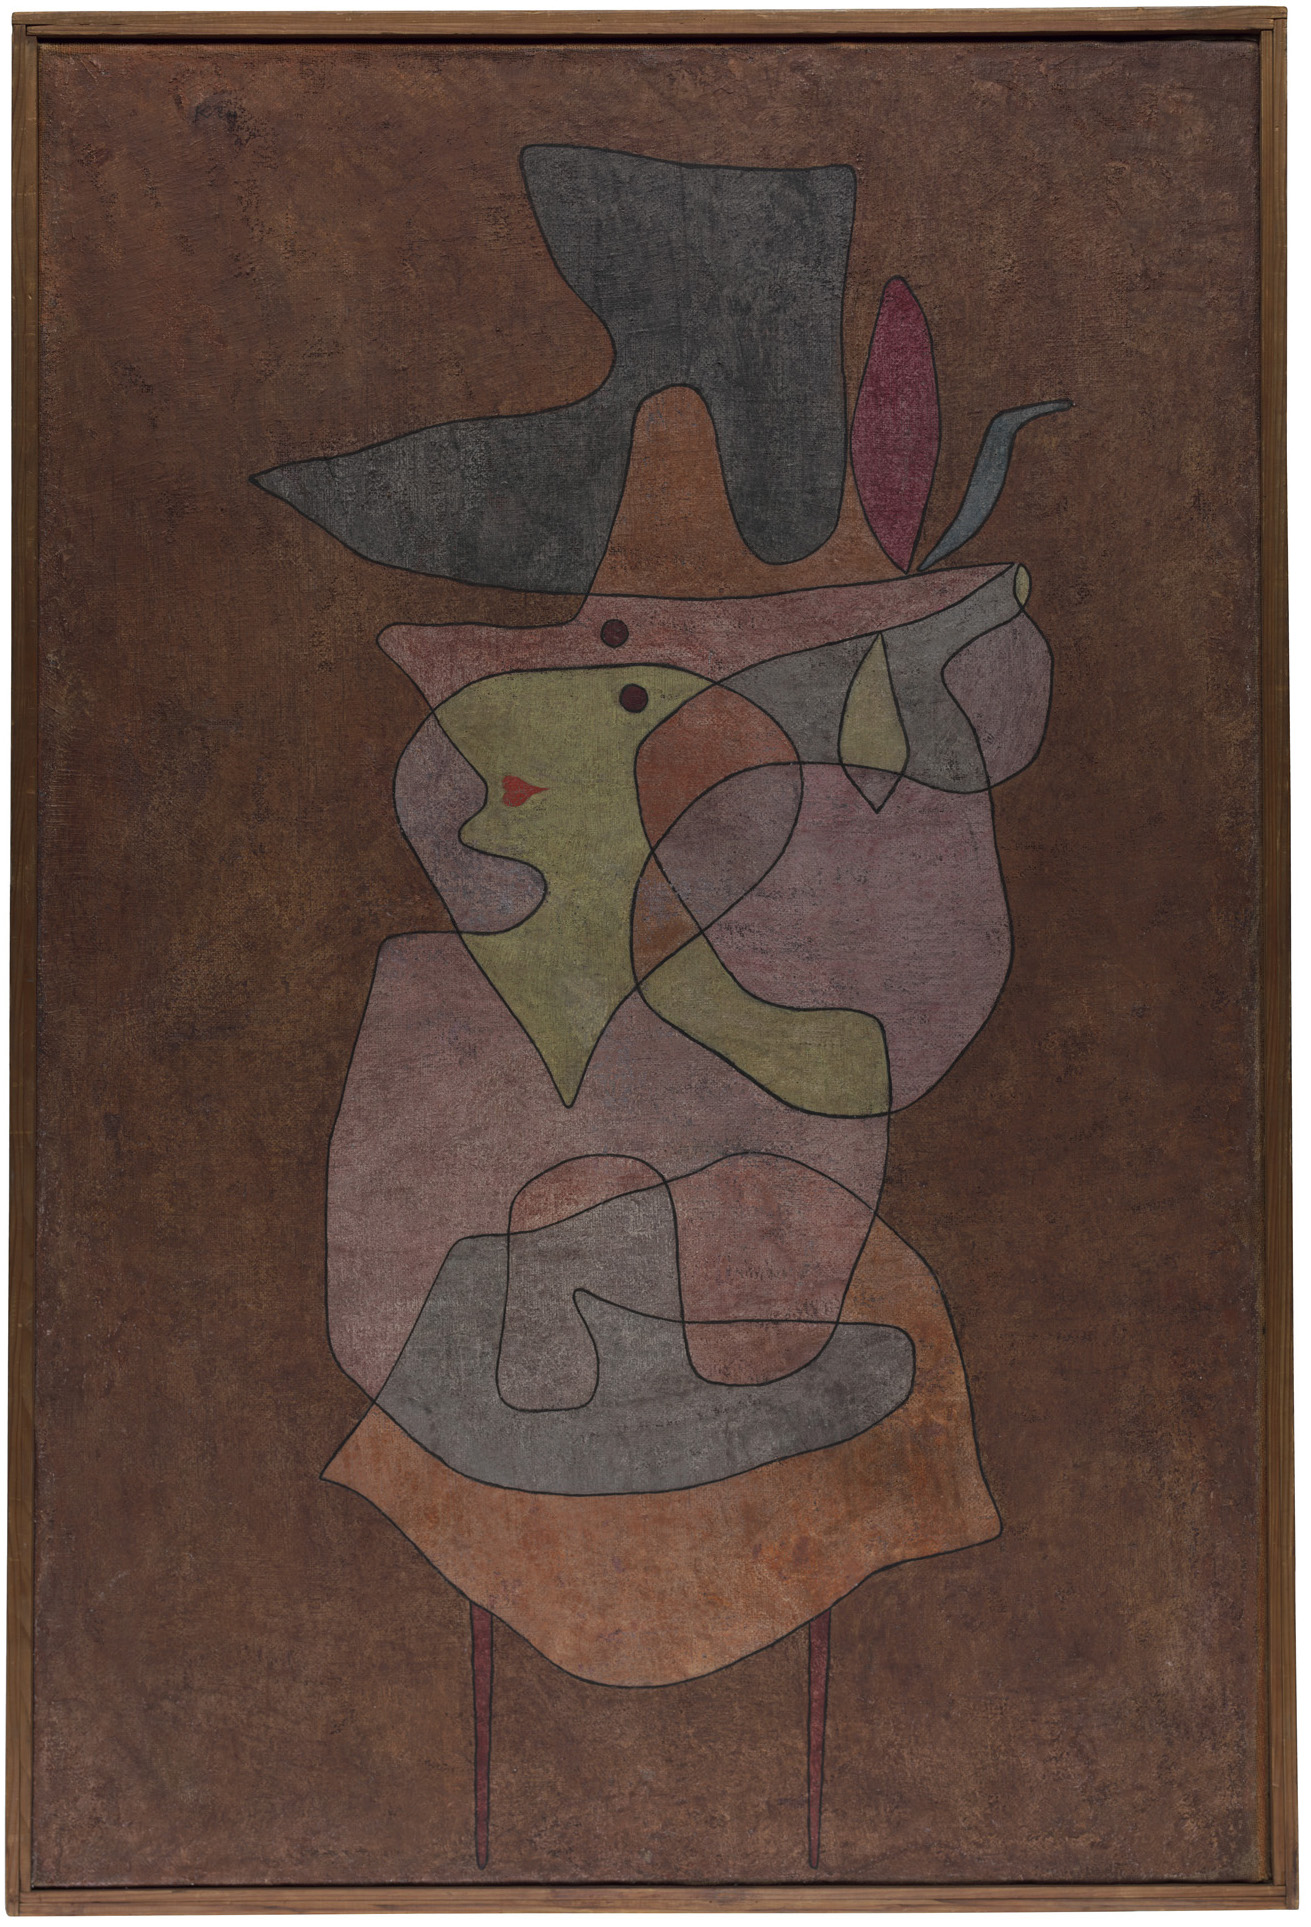 Paul Klee, Dame Démon, 1935, oil and watercolor on prepared hessian canvas on card (courtesy Zentrum Paul Klee, Bern)